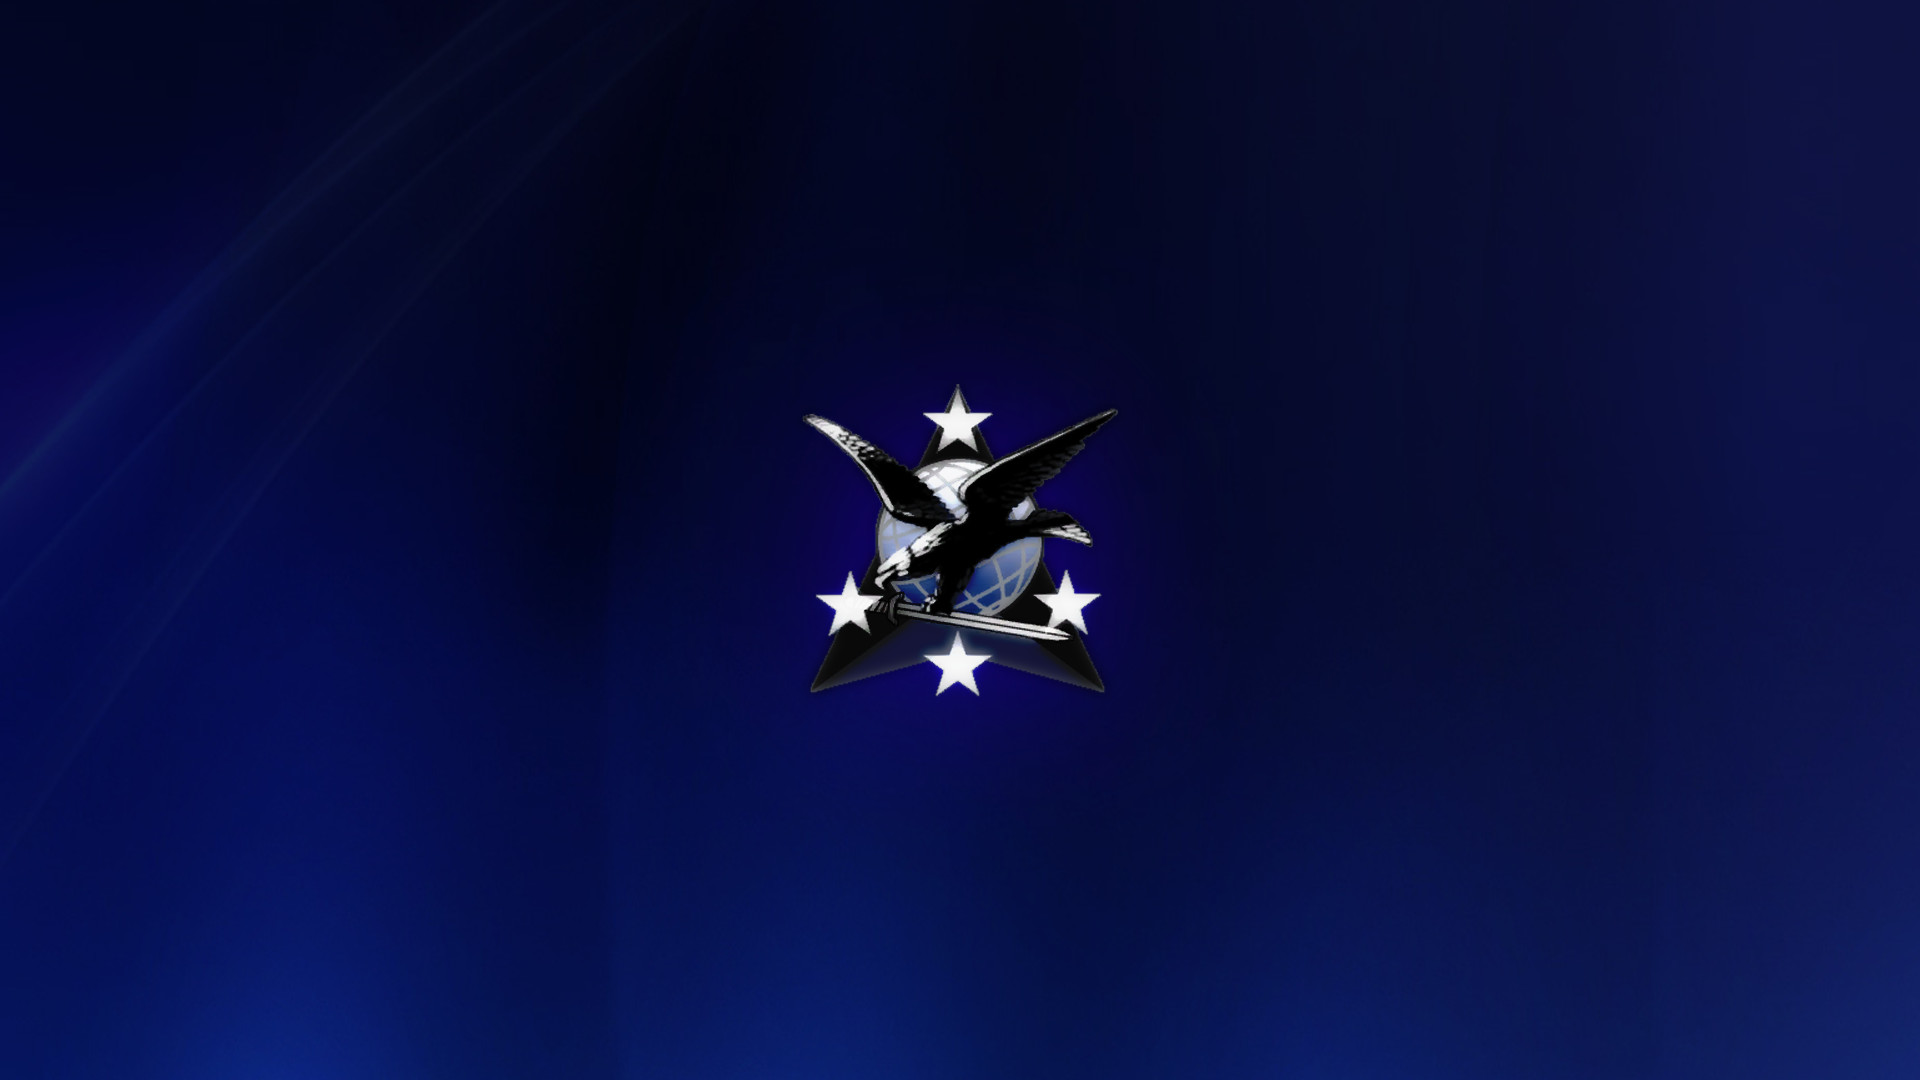 Go Back > Images For > Navy Seal Wallpaper Iphone